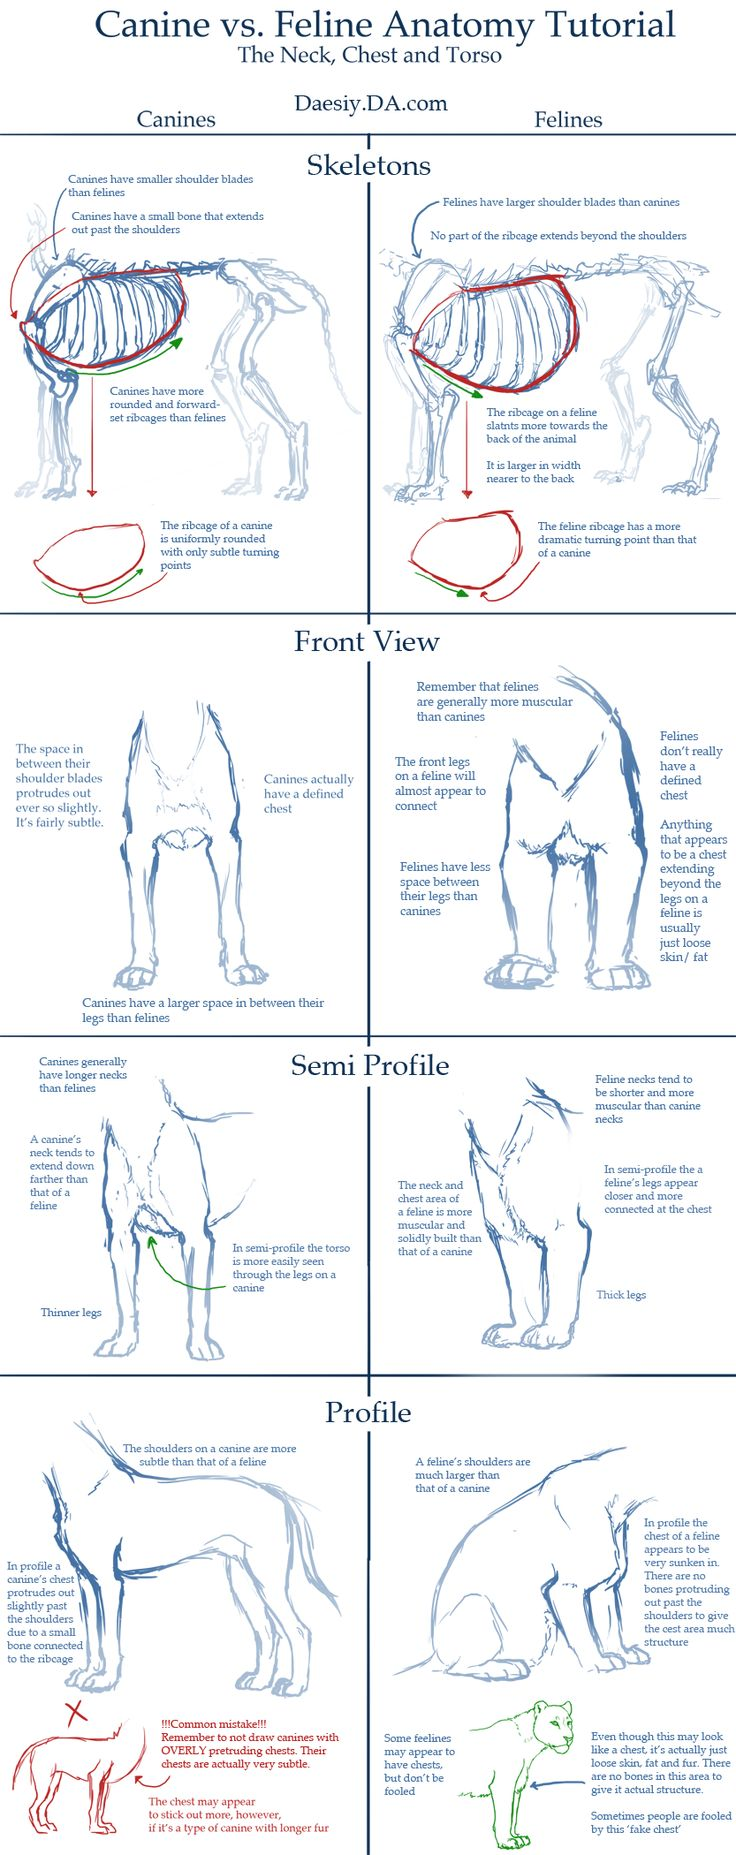 Canine v Feline Chest Anatomy Tutorial by Daesiy.deviantart.com on @deviantART